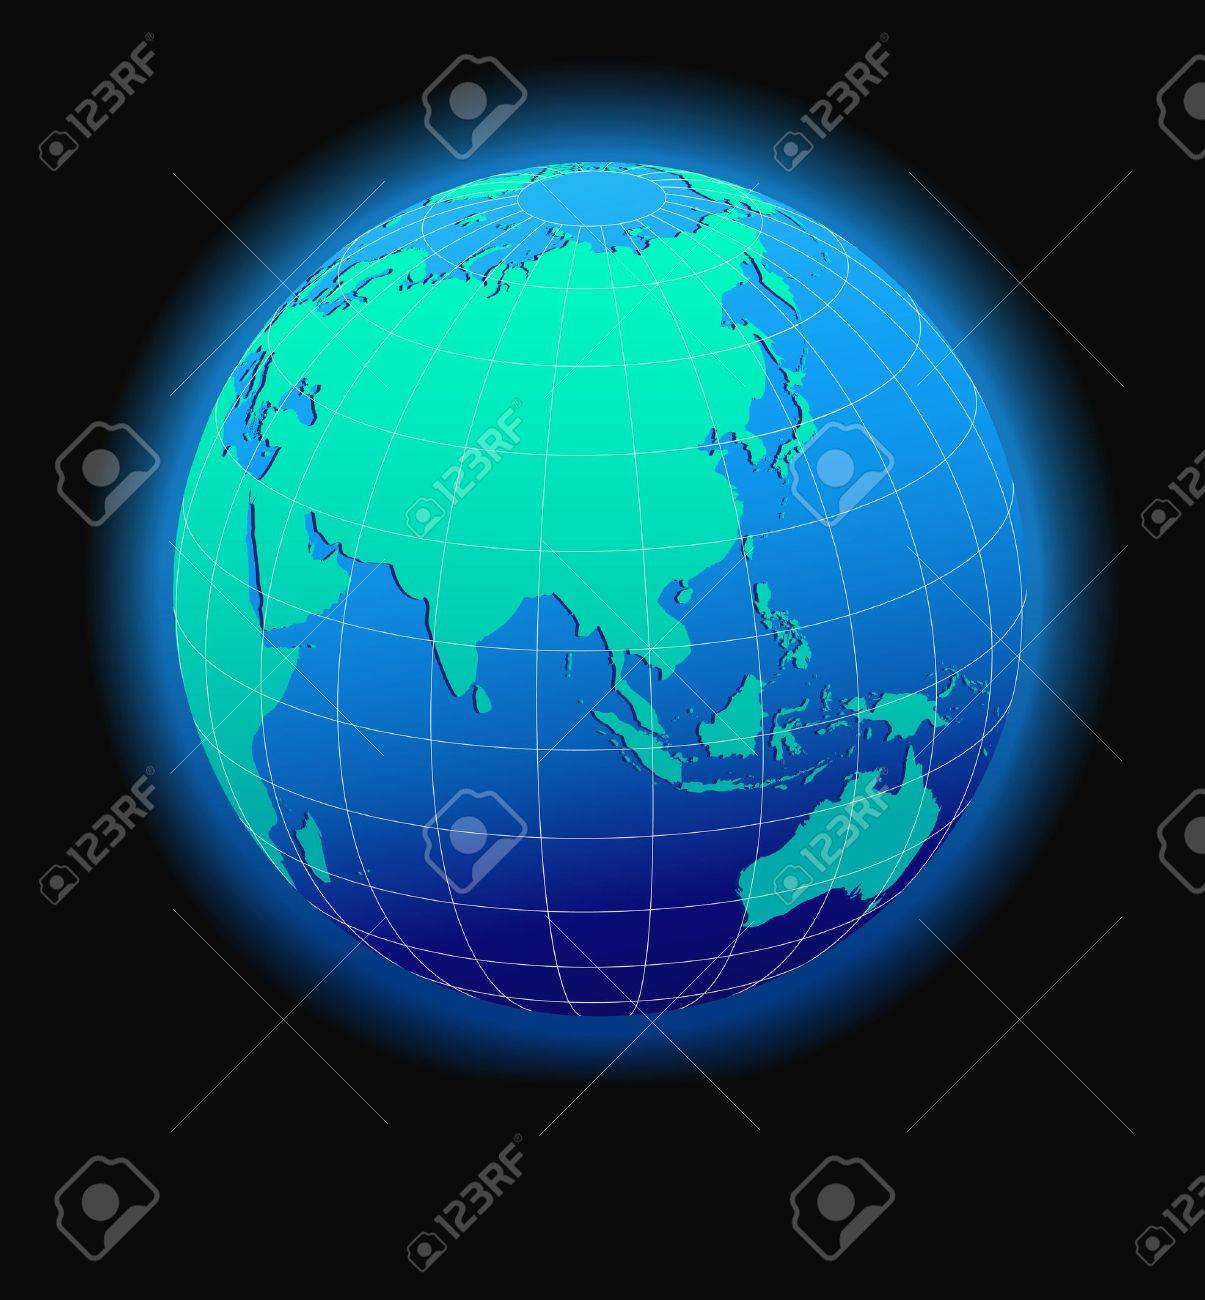 China And Asia, Global World In Space - Map Icon Of The World ...